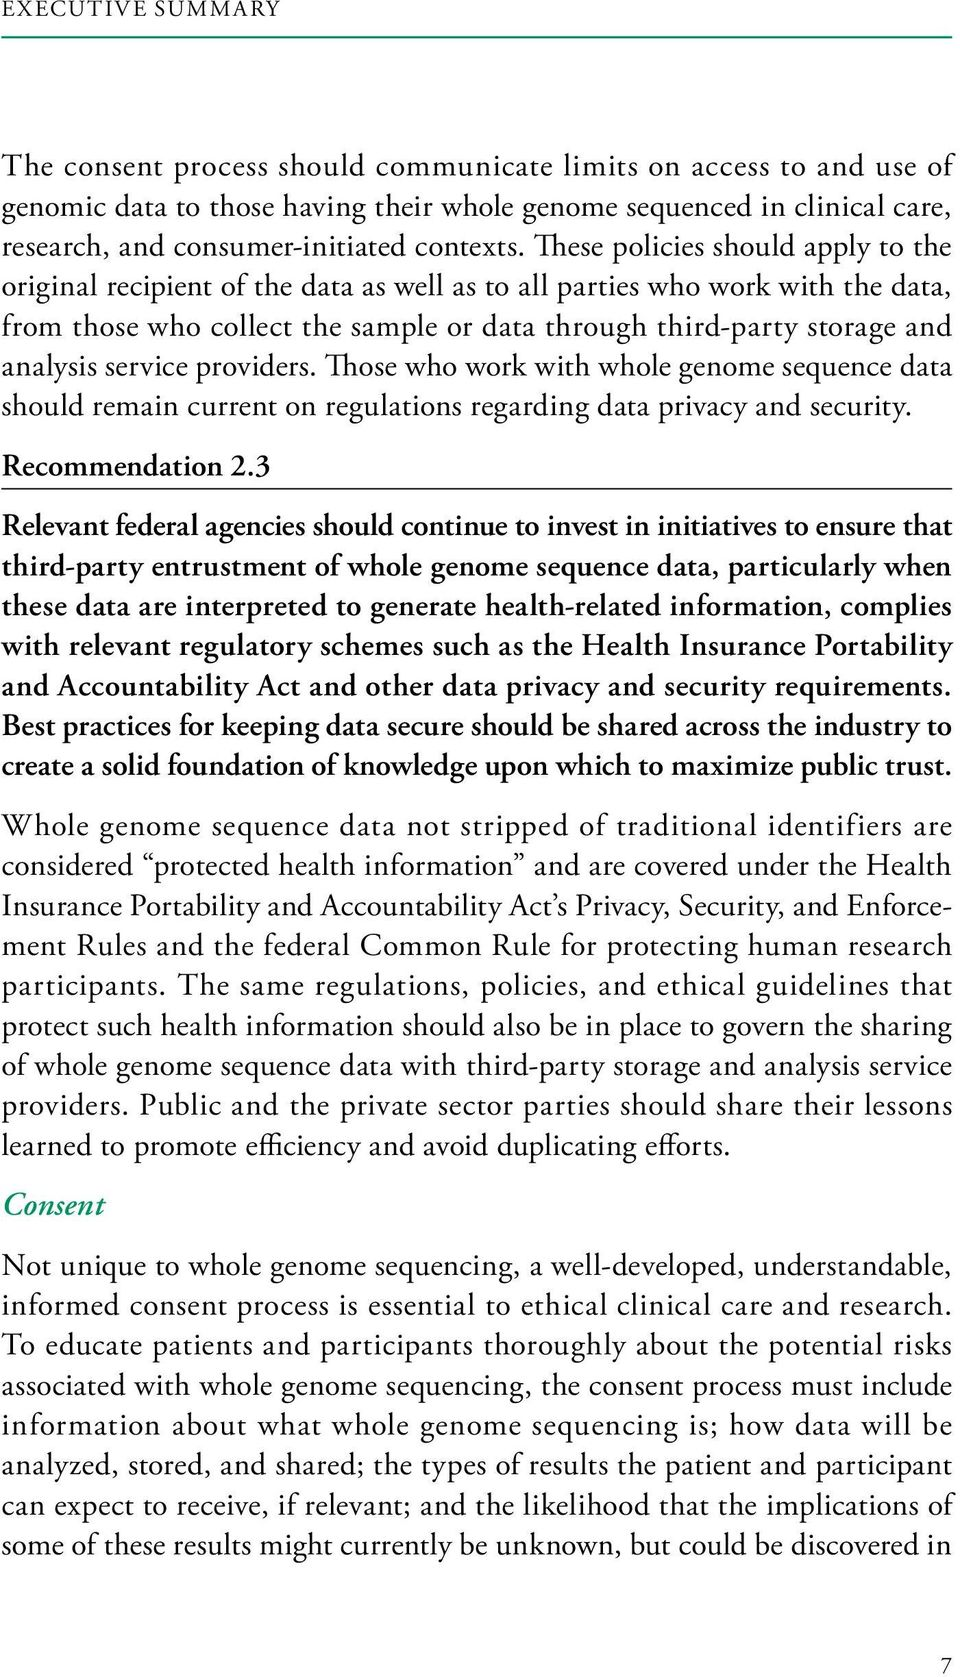 These policies should apply to the original recipient of the data as well as to all parties who work with the data, from those who collect the sample or data through third-party storage and analysis